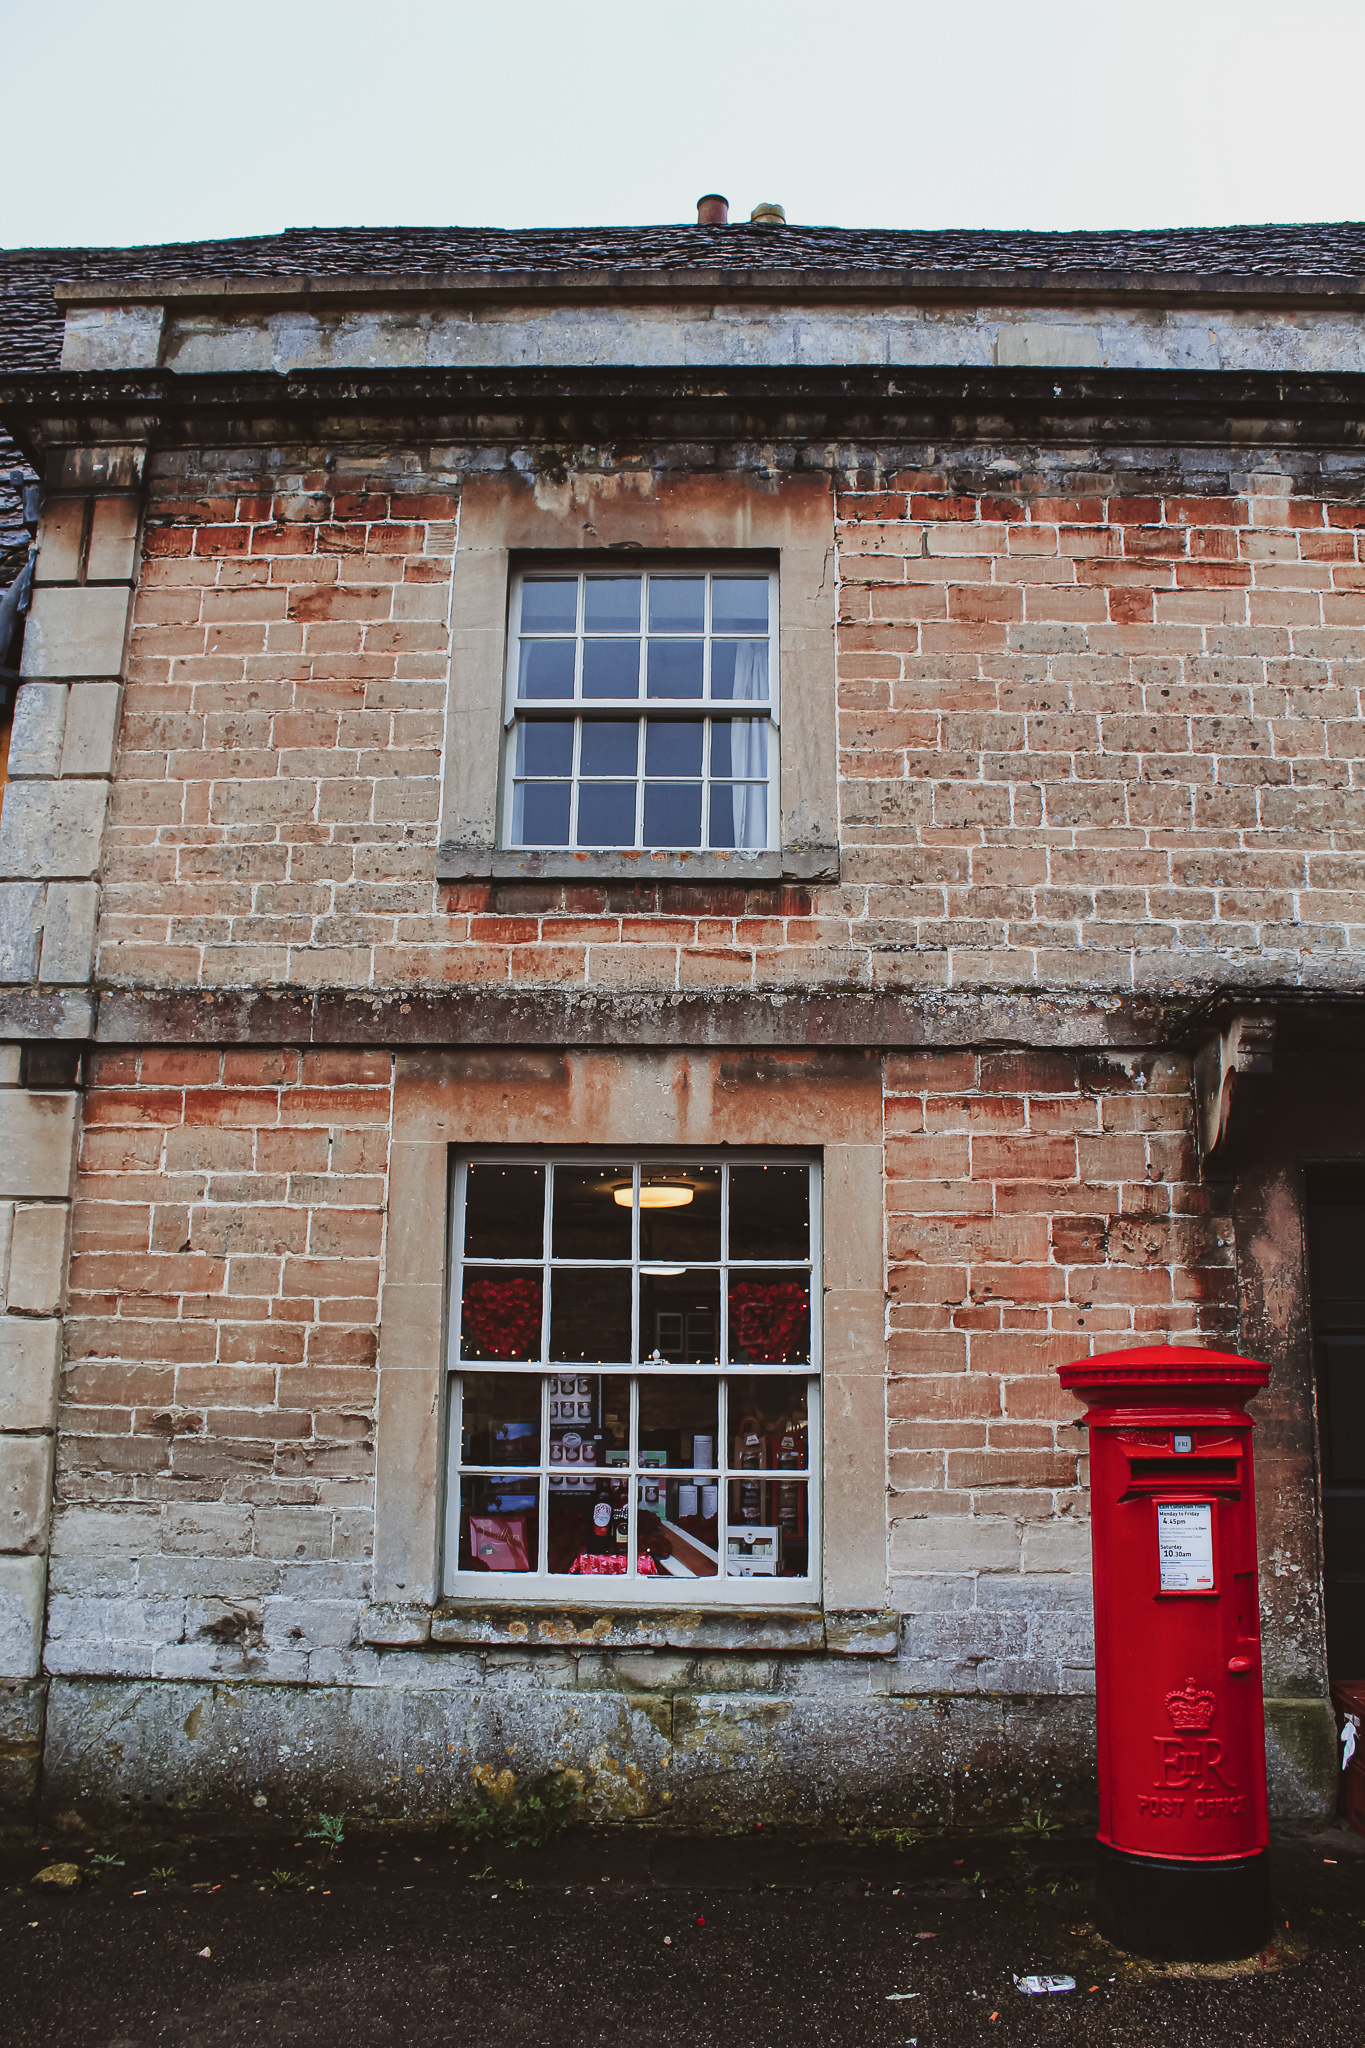 Lacock Wiltshire: An English Village